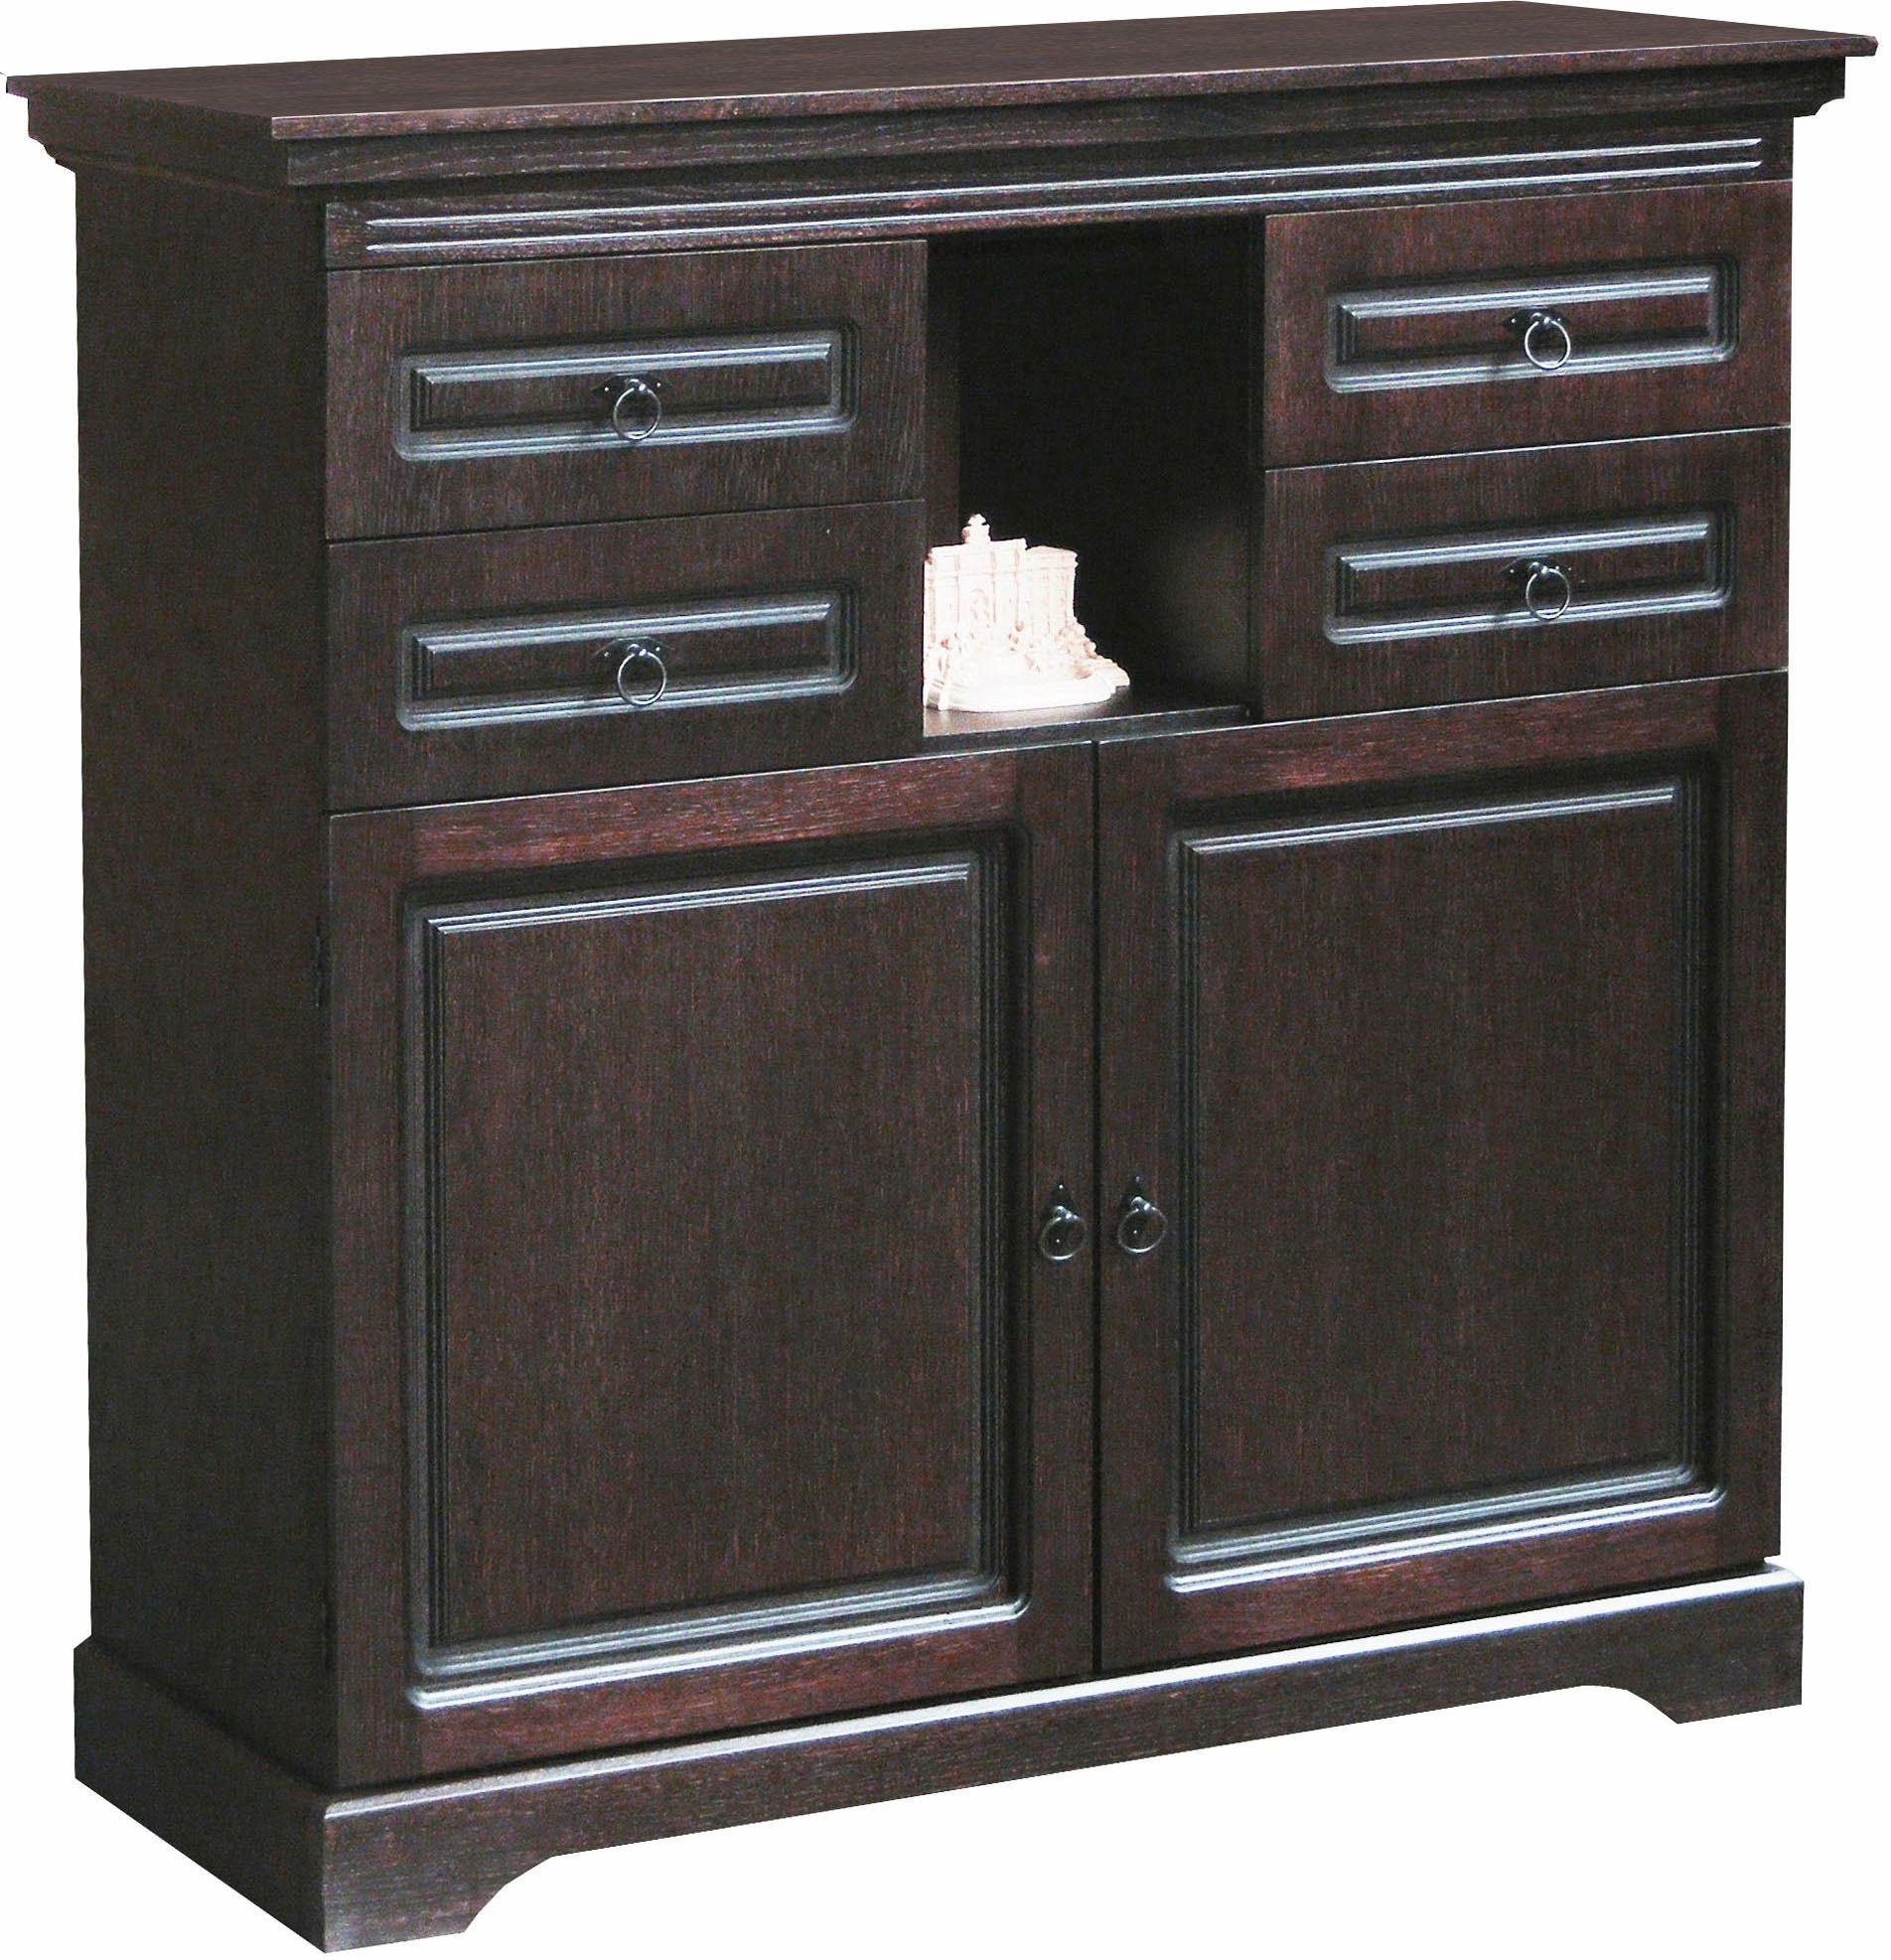 Highboard 120 Cm Breit Home Affaire Highboard Porto Rico Breite 120 Cm Otto